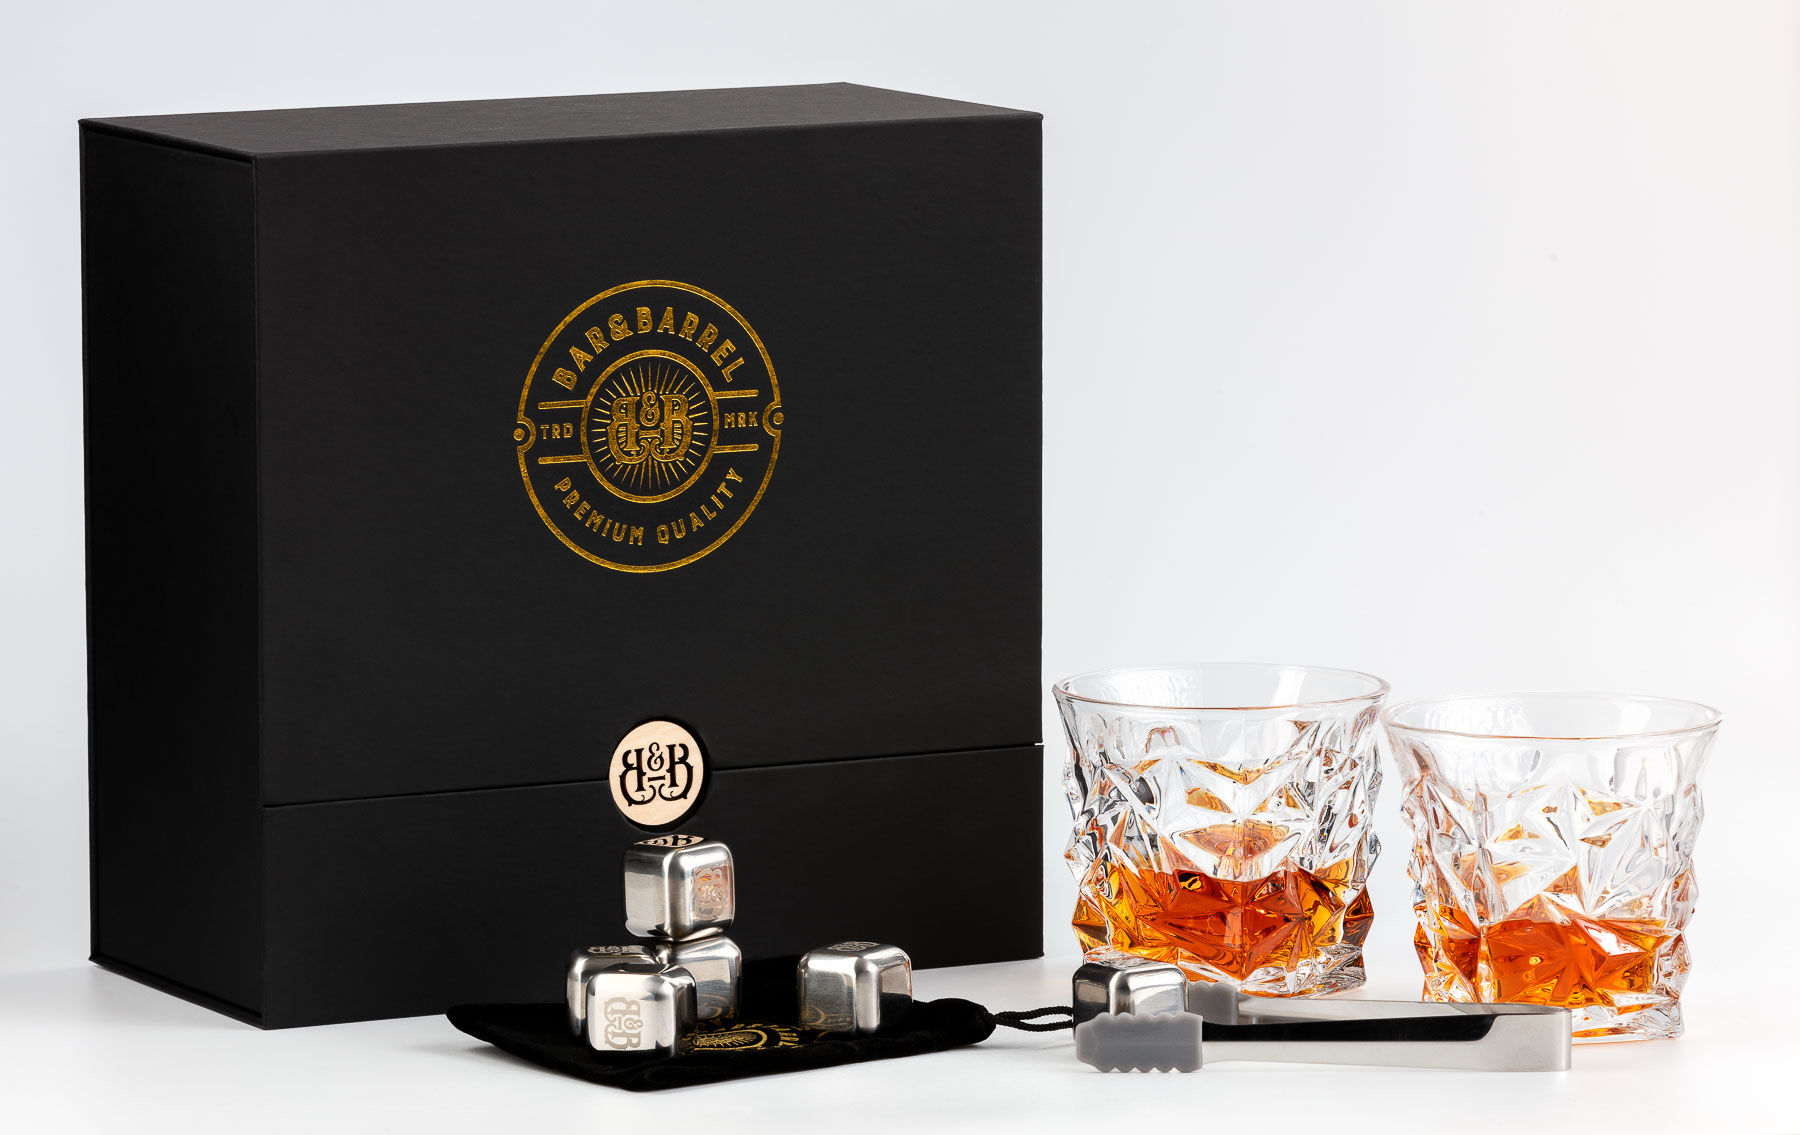 Bar&Barrel Whisky Cup set duo detailed beside box - Product photography for Amazon and website